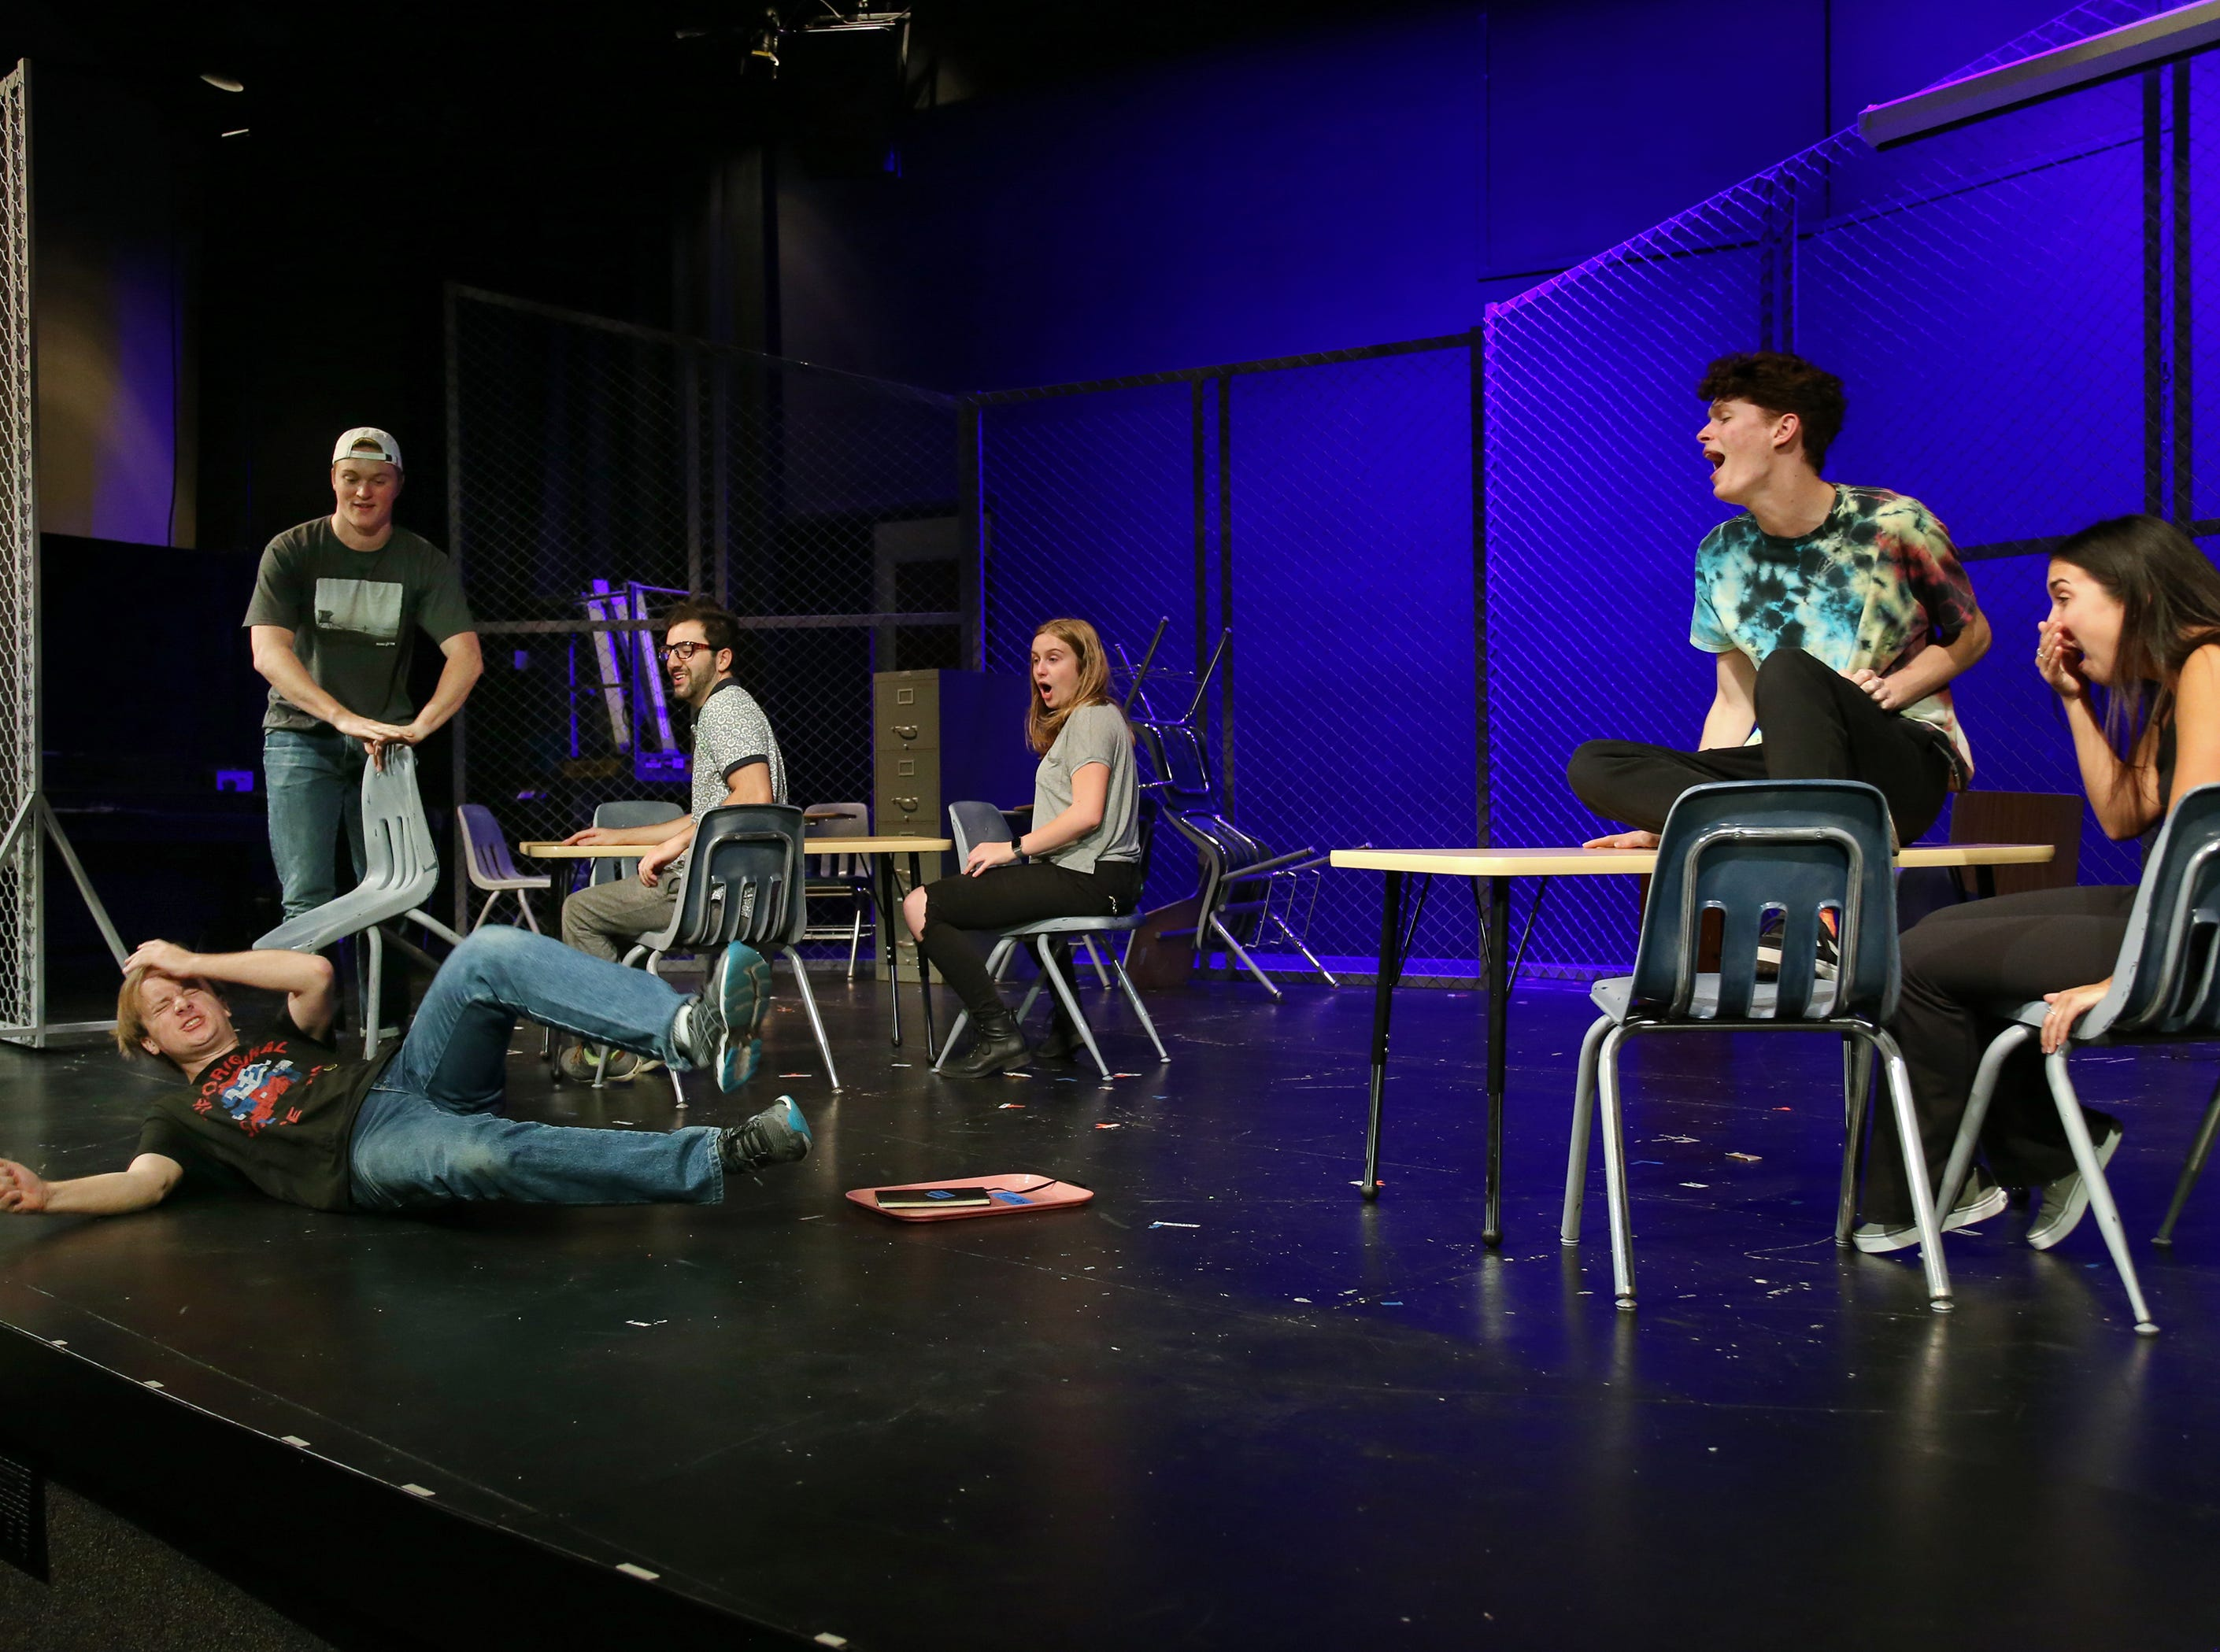 """Jacob White reacts after having his chair pulled out from underneath him by Clayton Currie in California Lutheran University's production of """"Columbinus."""" Sharing the stage are Mahyar Mirazazadeh, Gabrielle Reublin, Jordan Erickson and Amber Marroqui. The director said the increase in school shootings make it important for the play, based on the 1999 shooting at Columbine High School in Littleton, Colorado, to be staged. White plays the role of shooter Dylan Klebold."""